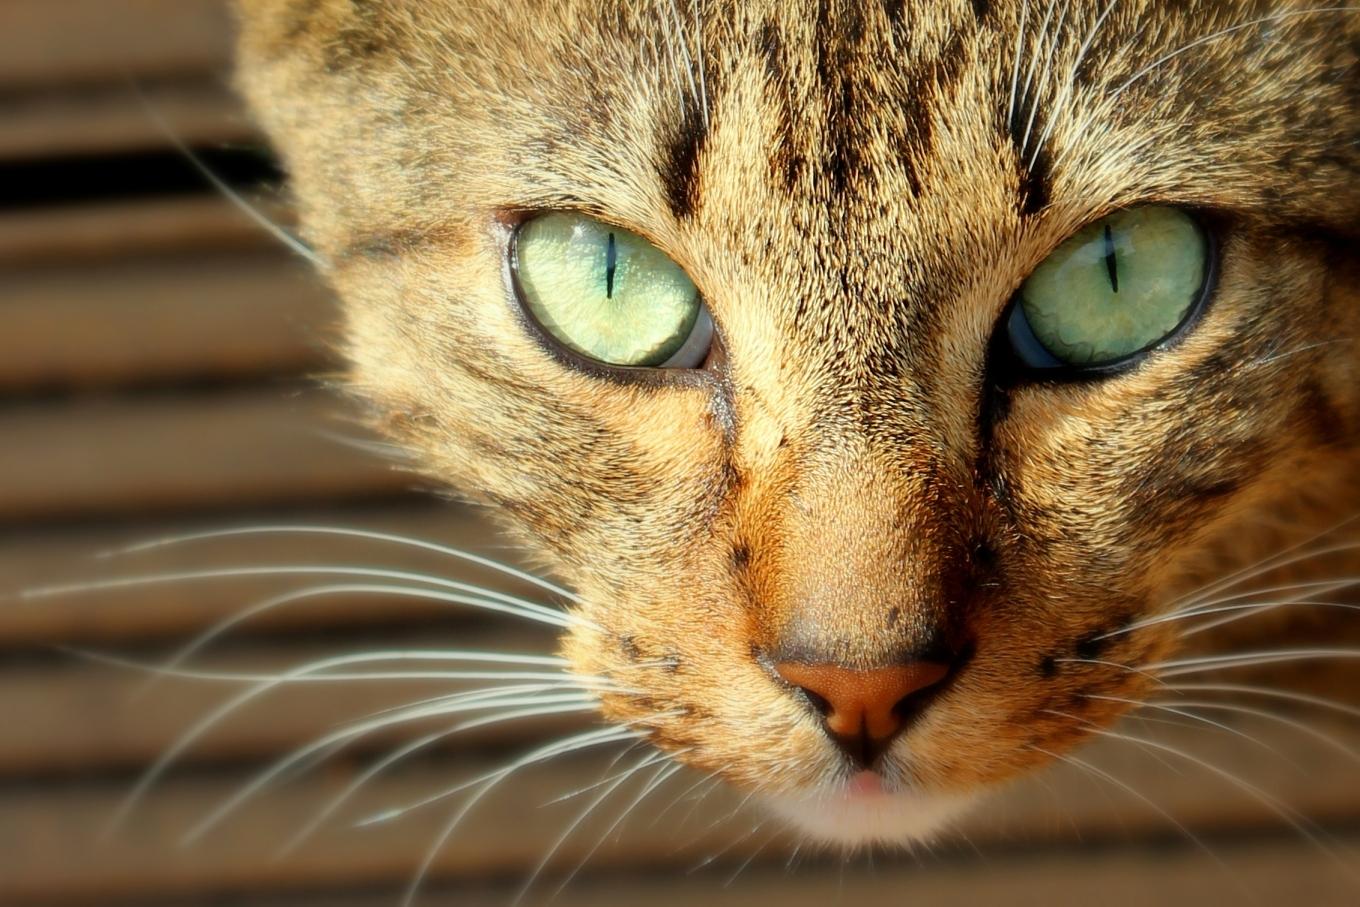 The Naming Of Cats, a poem by T S Eliot